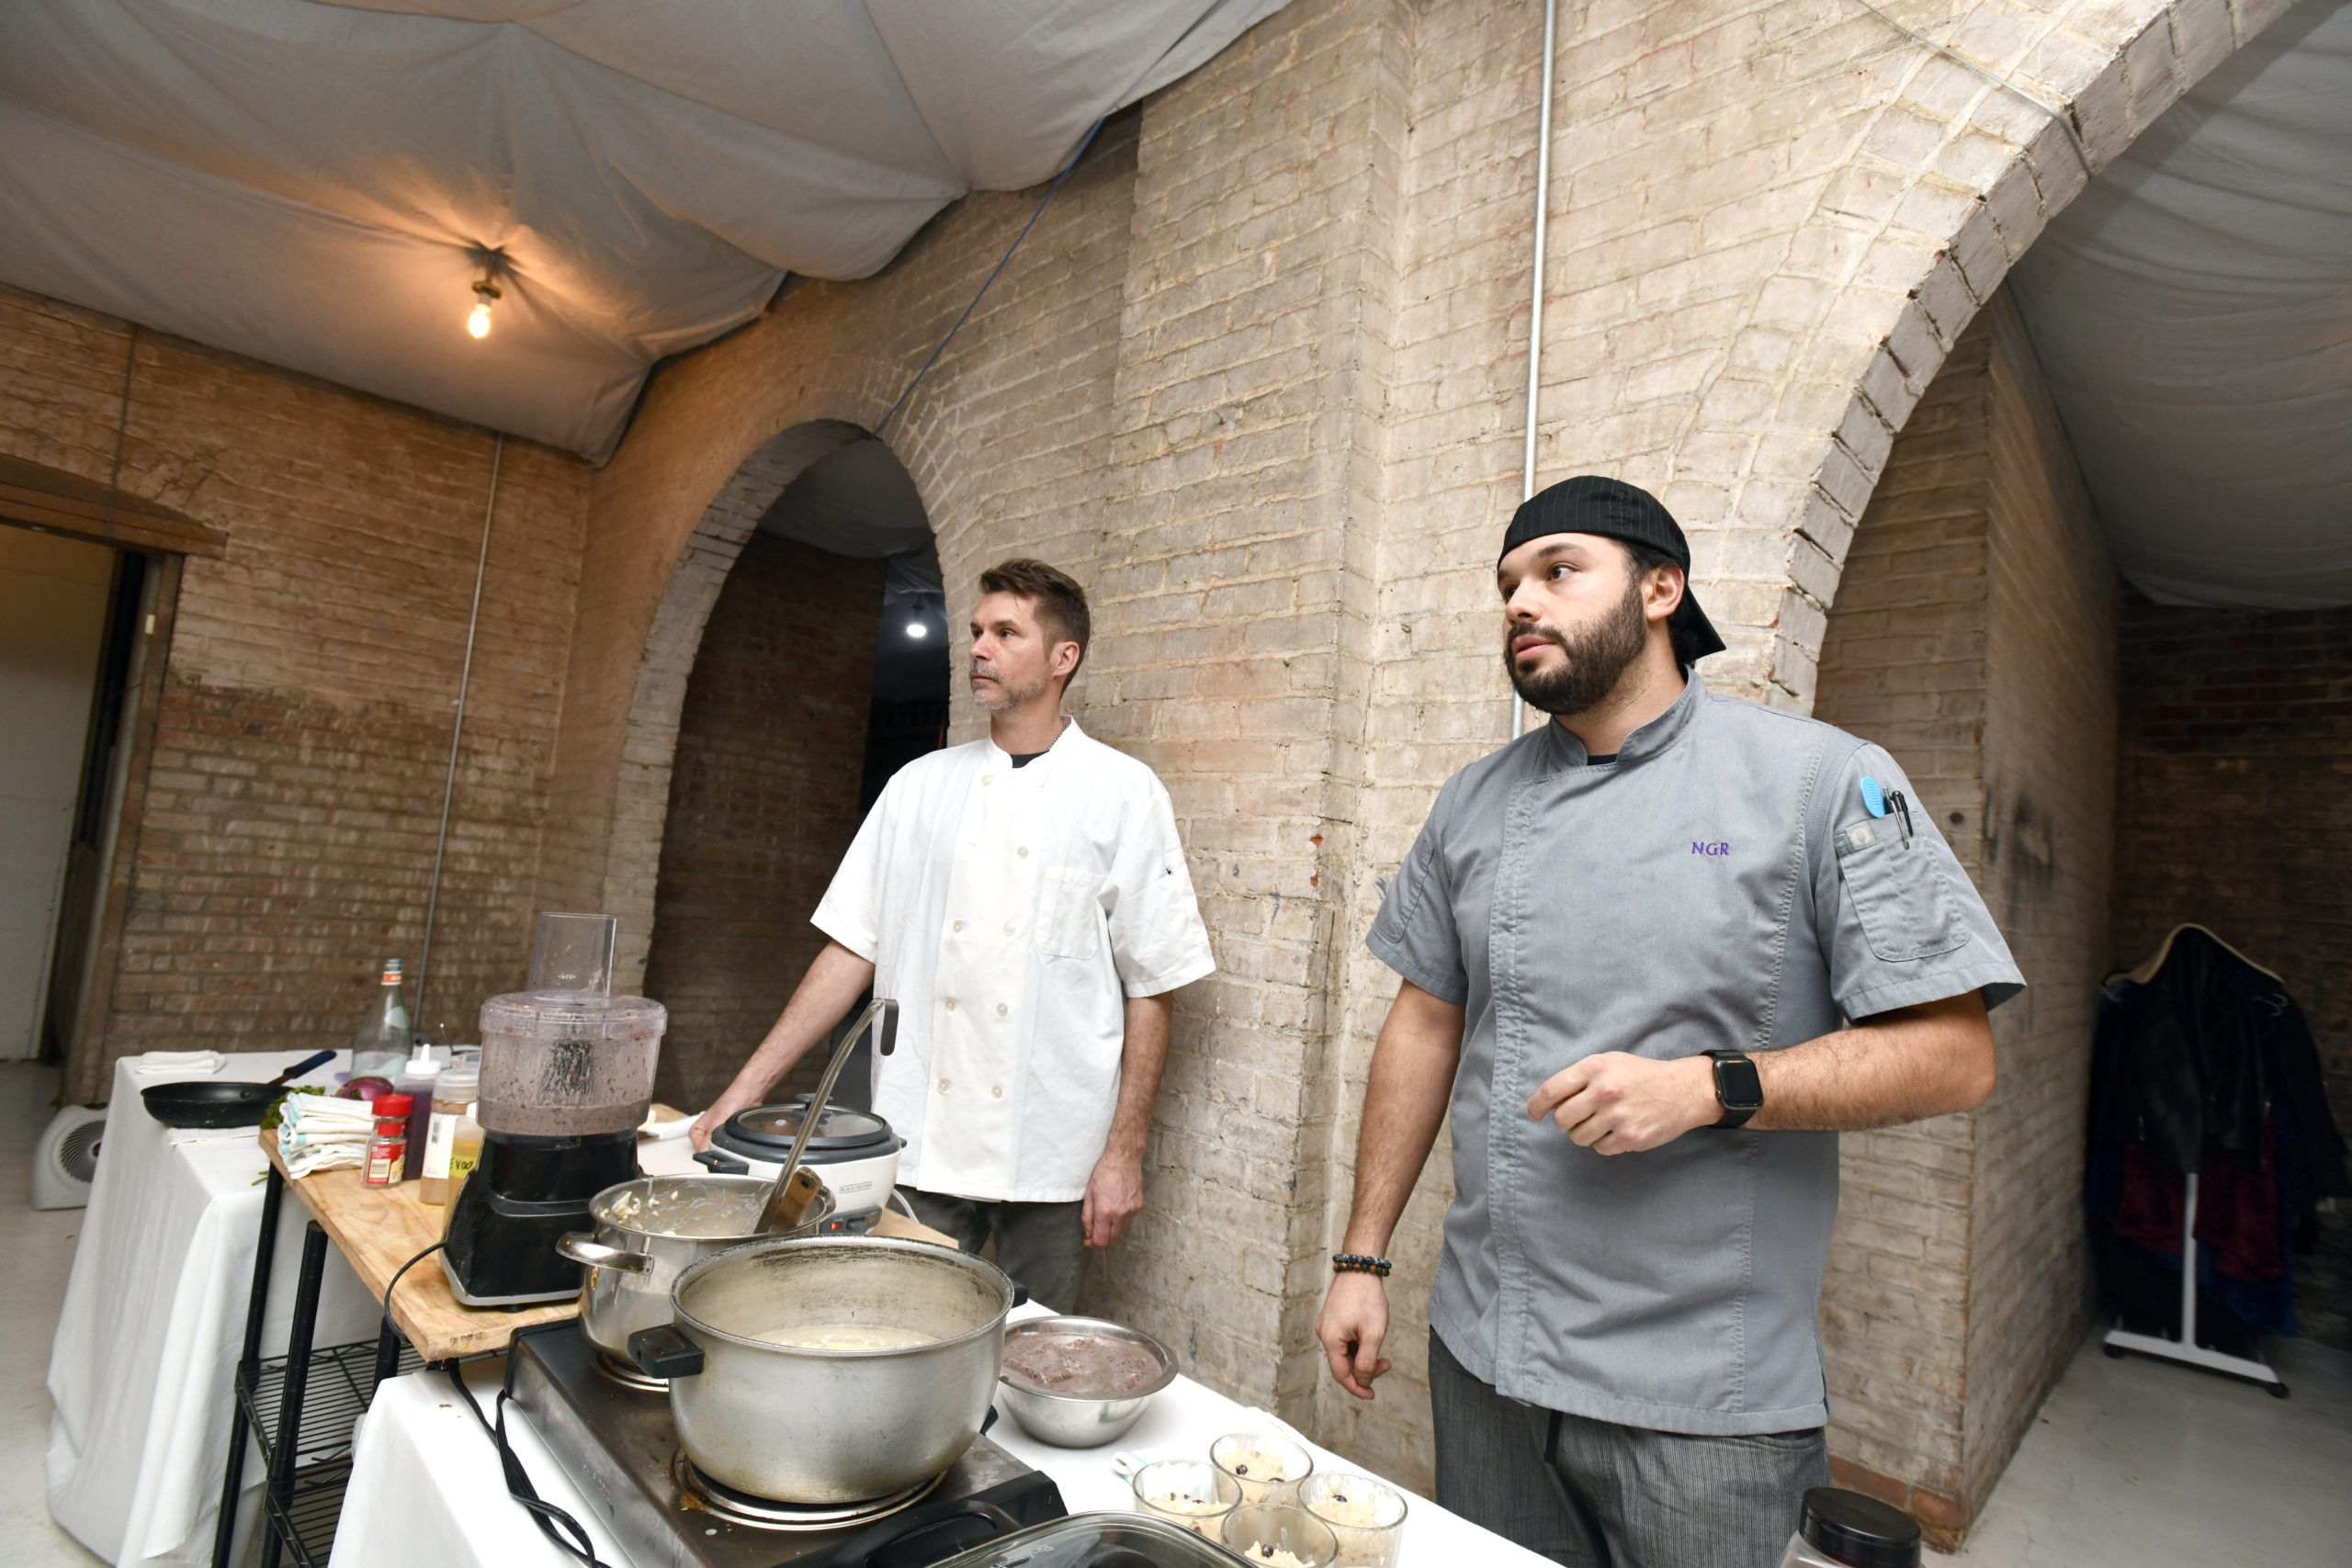 Chefs Chef Jon Albrecht and Nicolas Reisini during a class at The Spurn in Southampton.